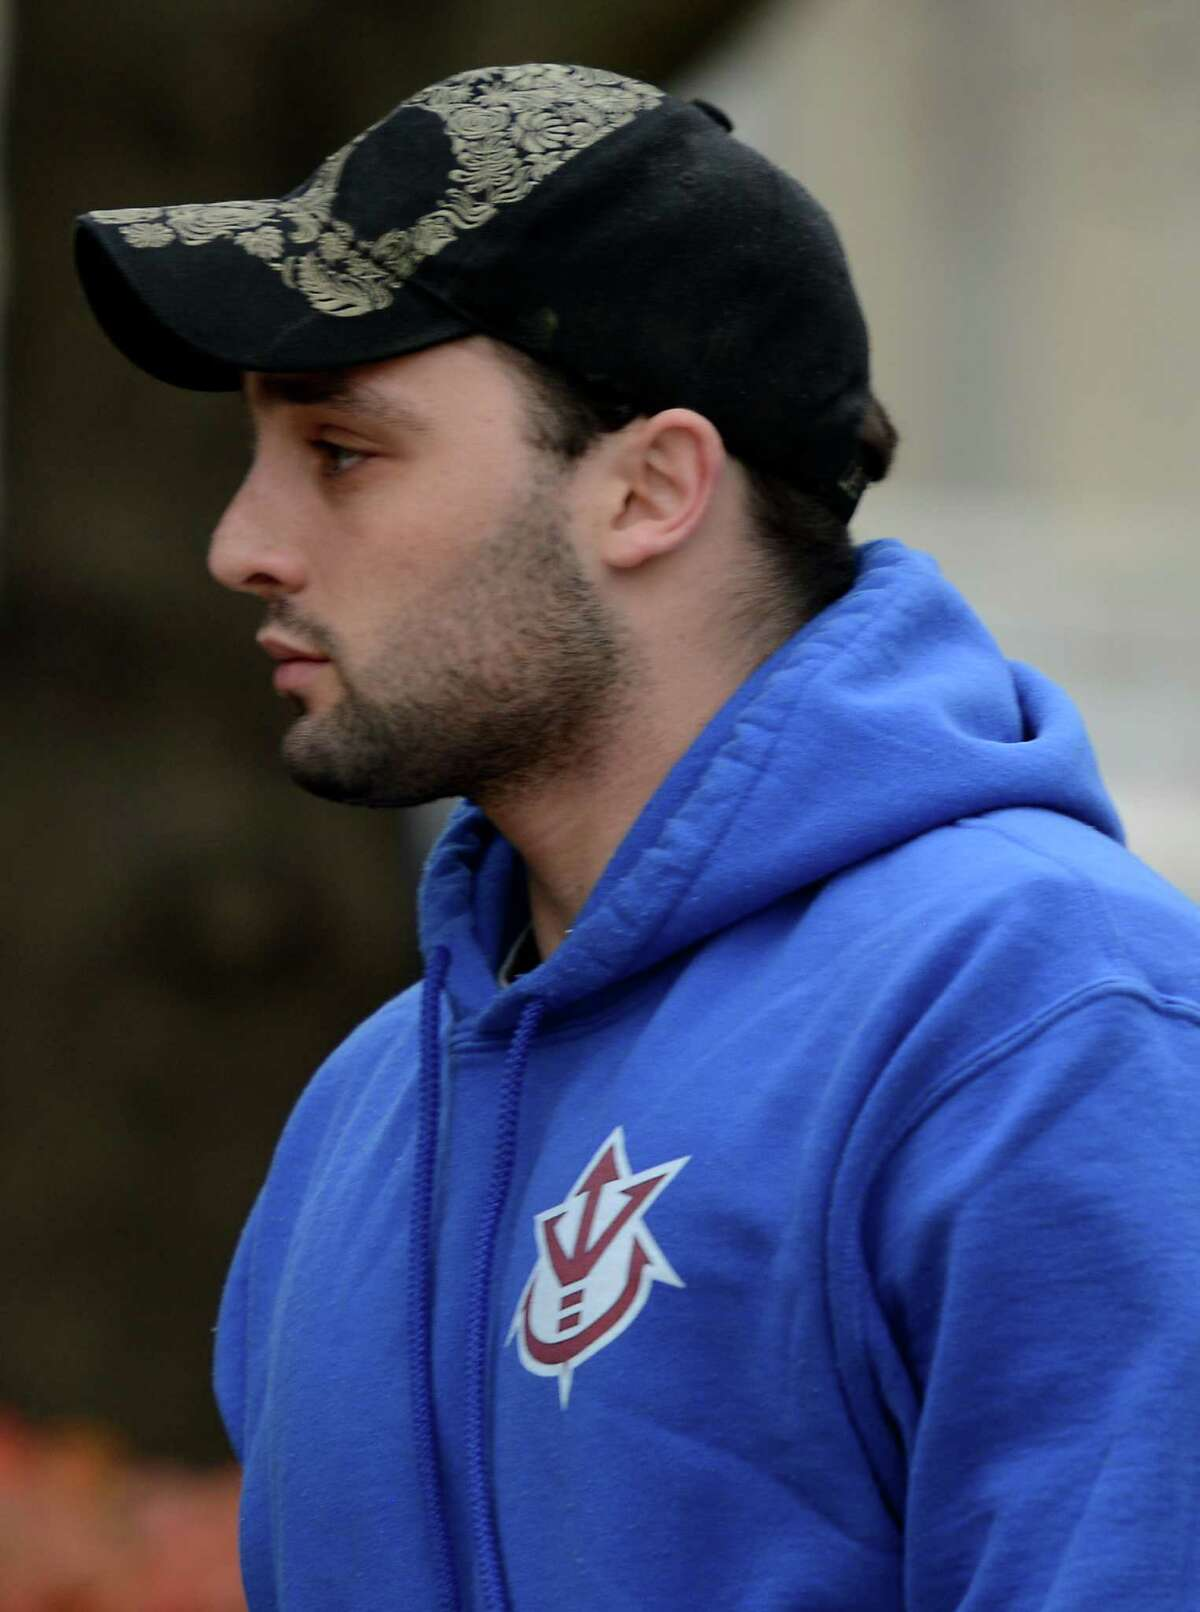 Joseph Caputo arriving at federal court in Bridgeport on Tuesday for pre-trial probation matters.